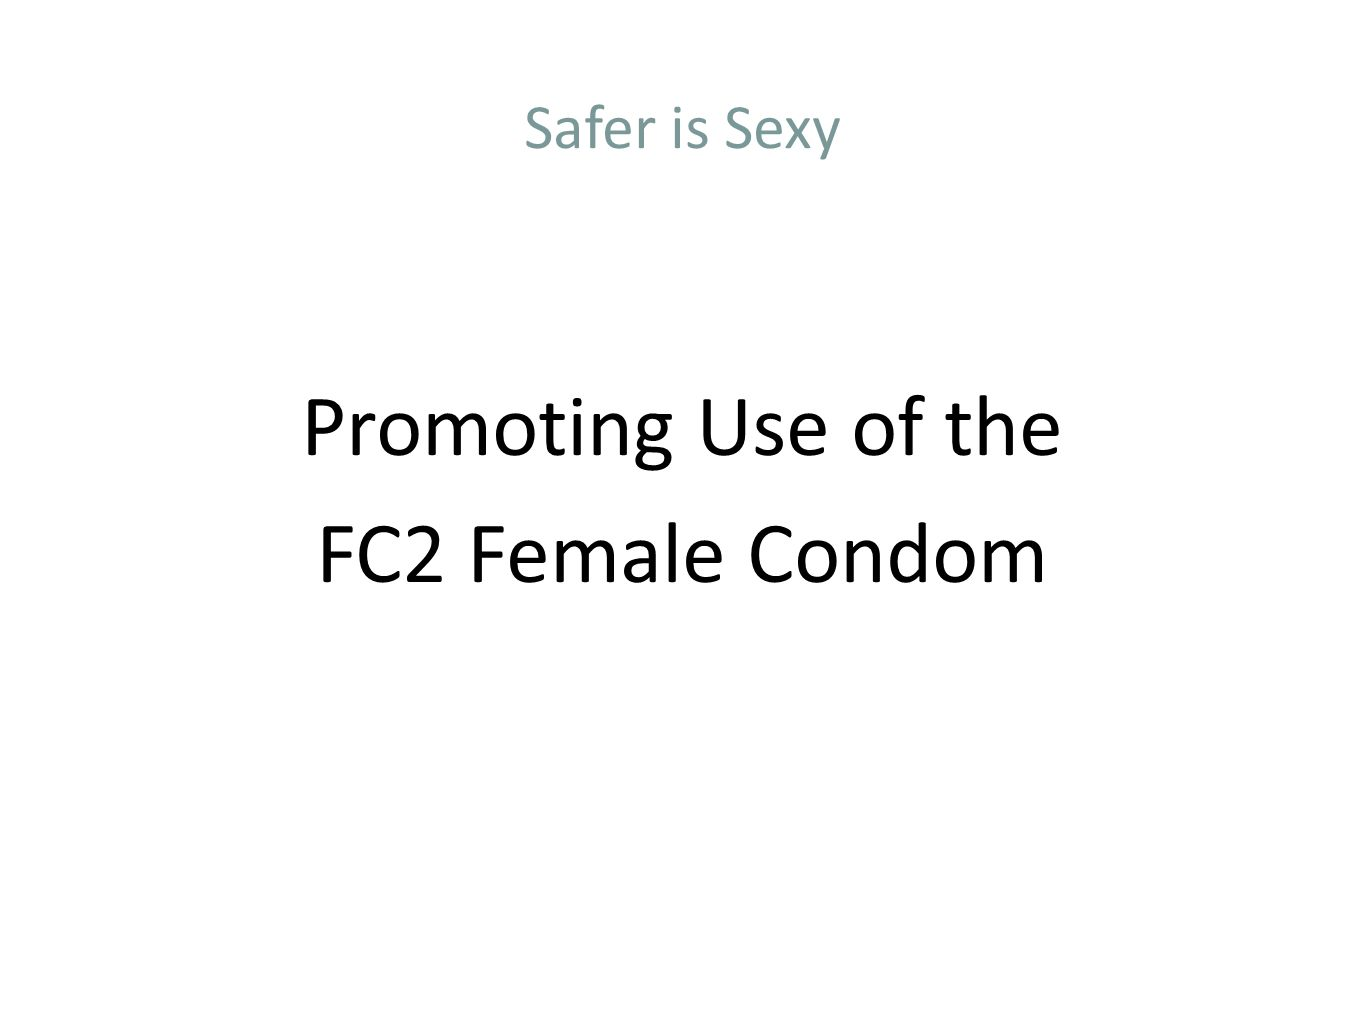 Safer is Sexy Promoting Use of the FC2 Female Condom